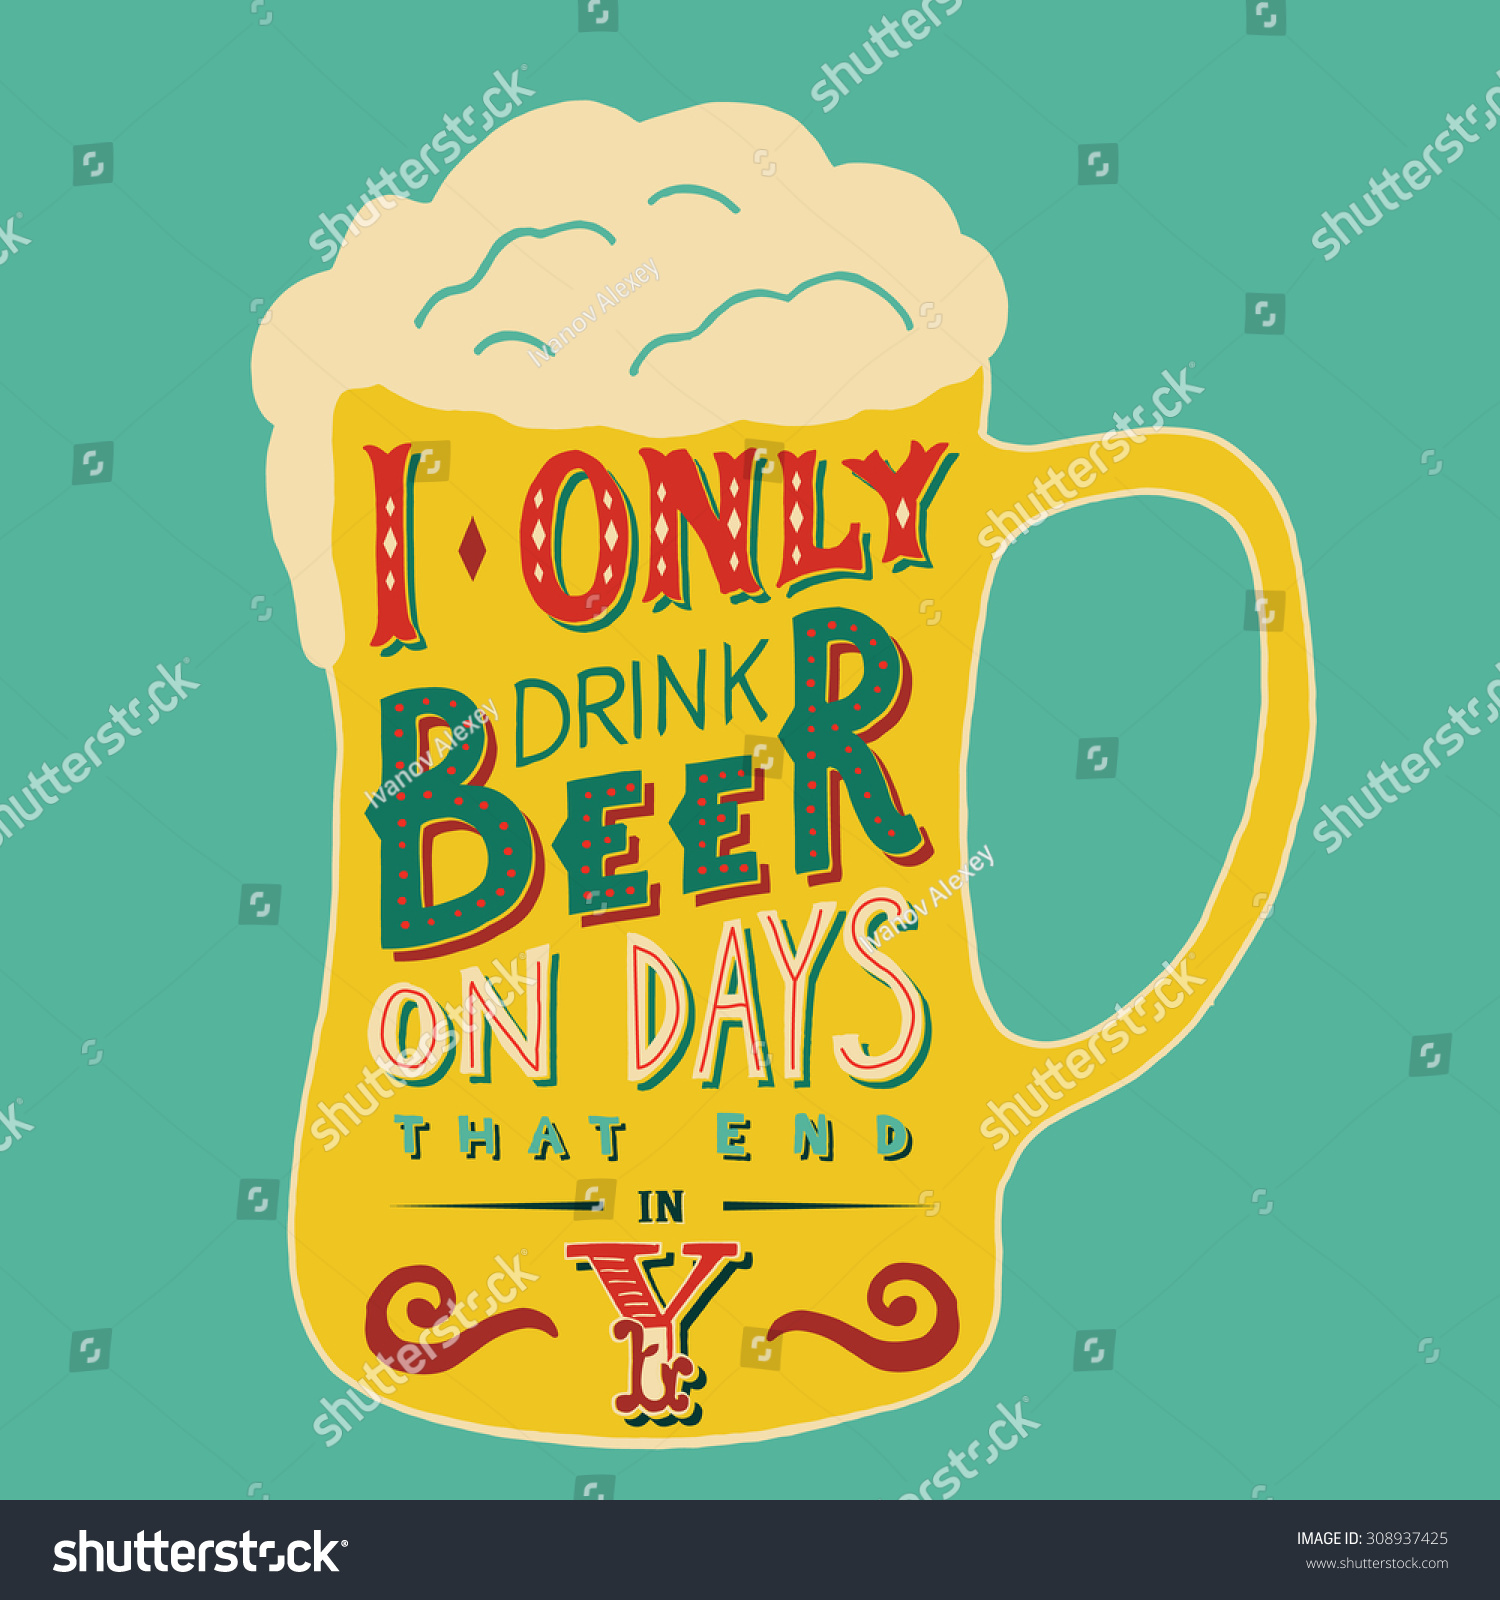 Poster design handmade - I Only Drink Beer On Days That End In Y Handmade Typographic Art For Poster